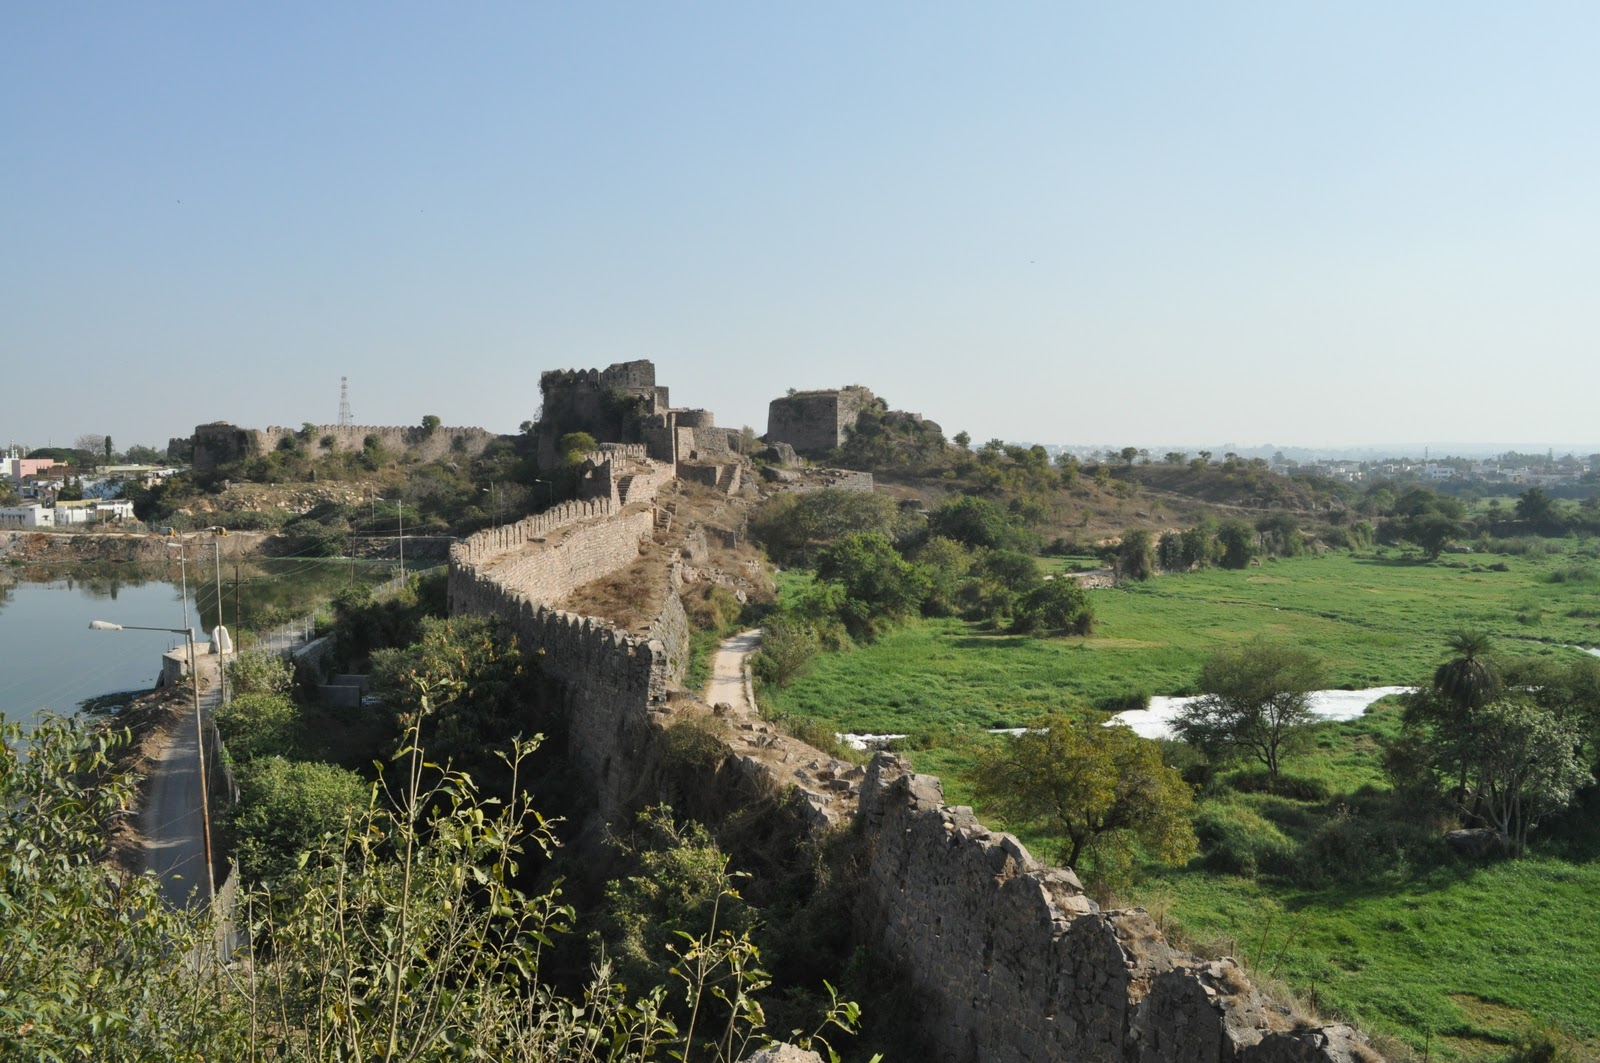 """golkonda fort essay One of the most spectacular monuments of india, golkonda fort is located 11kms west of hyderabad this historic fort derives its name from the telugu word """"golla konda"""" which means shepherd's hill."""